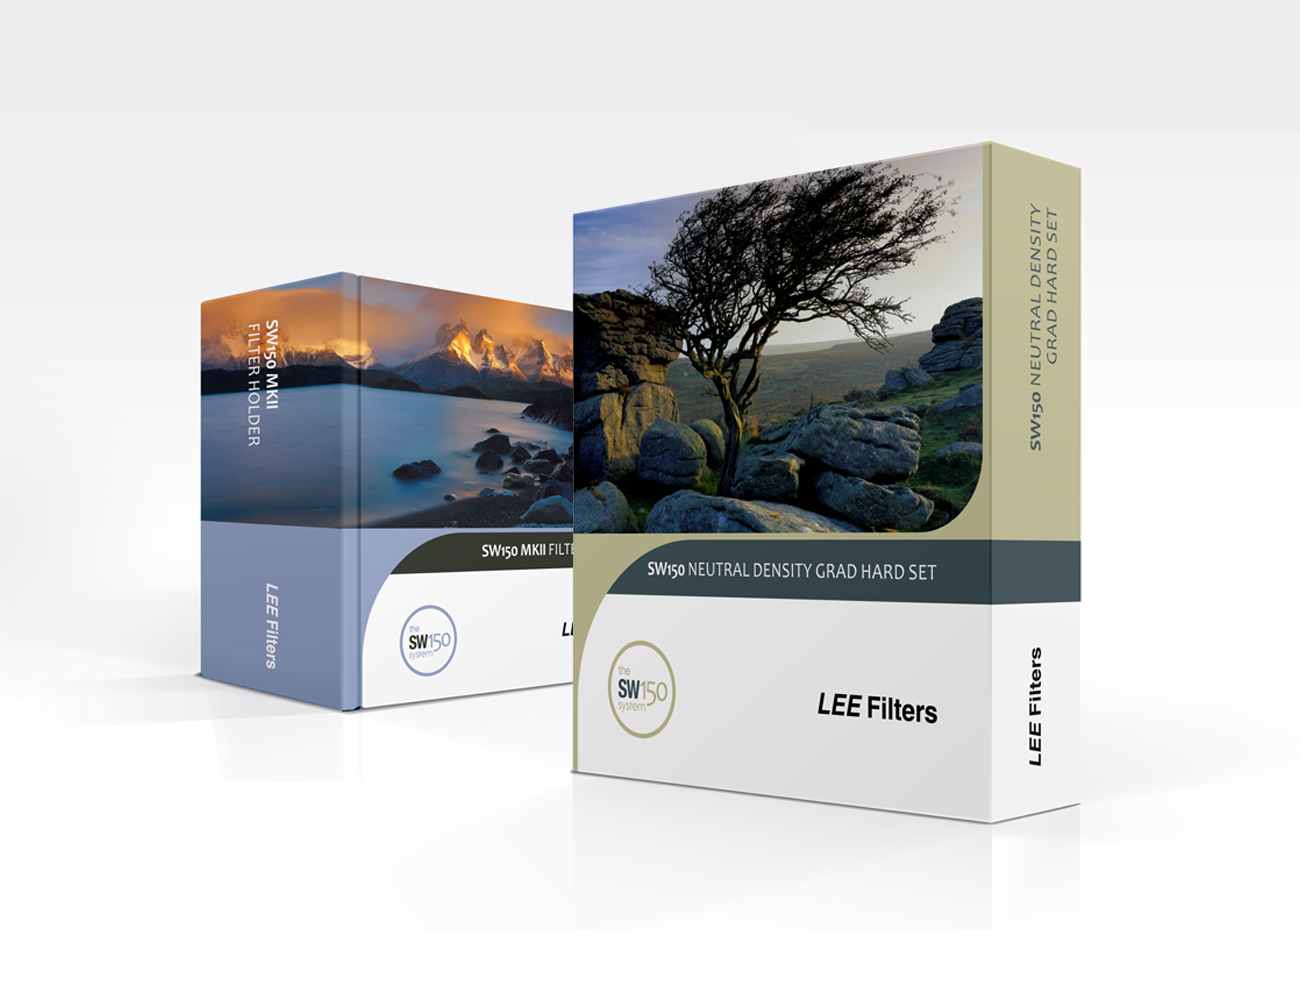 Packaging design for Lee Filters by Steve Davies graphic designer